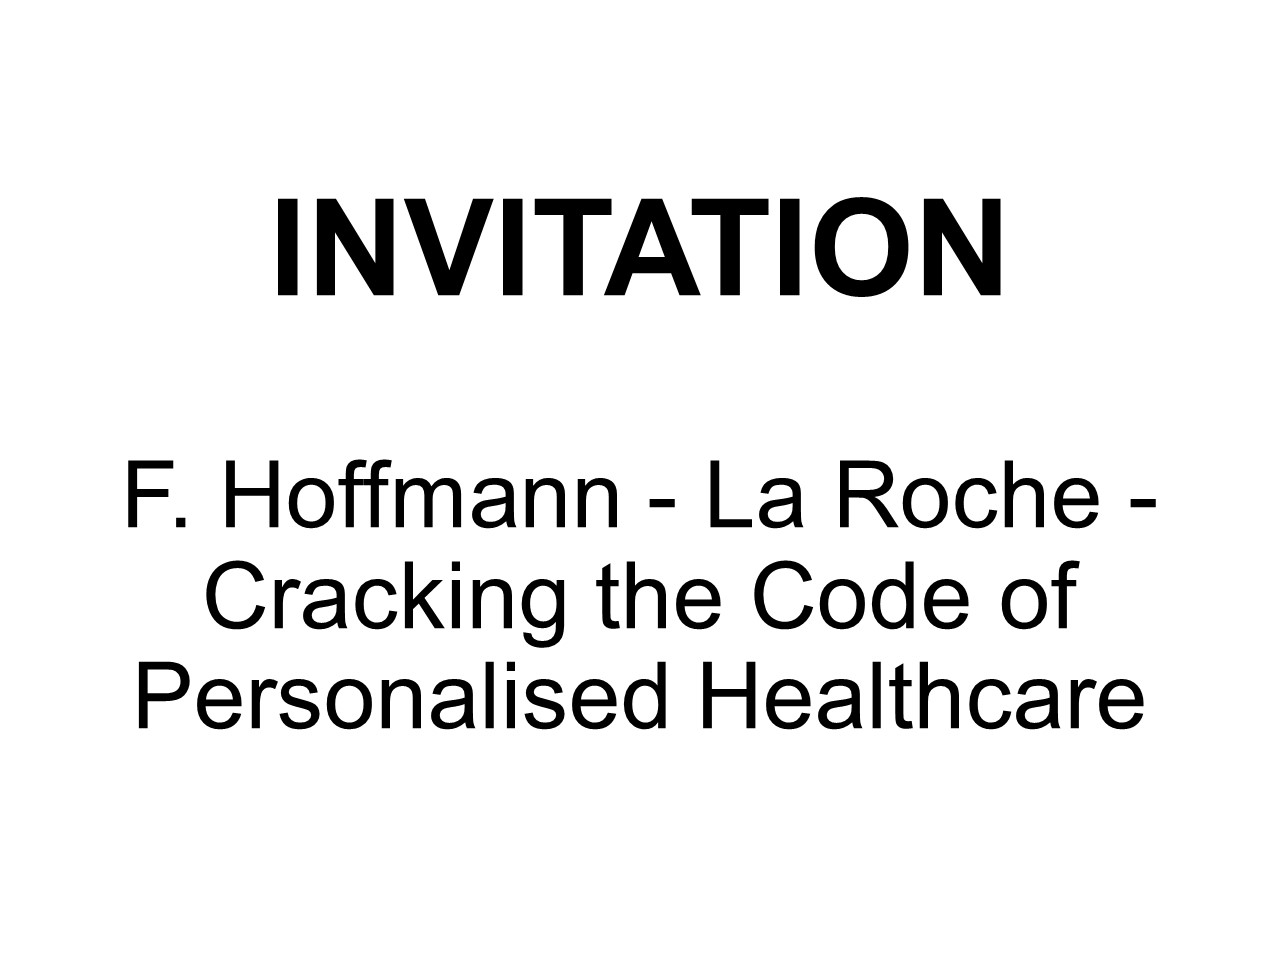 F. Hoffmann - La Roche: Cracking the Code